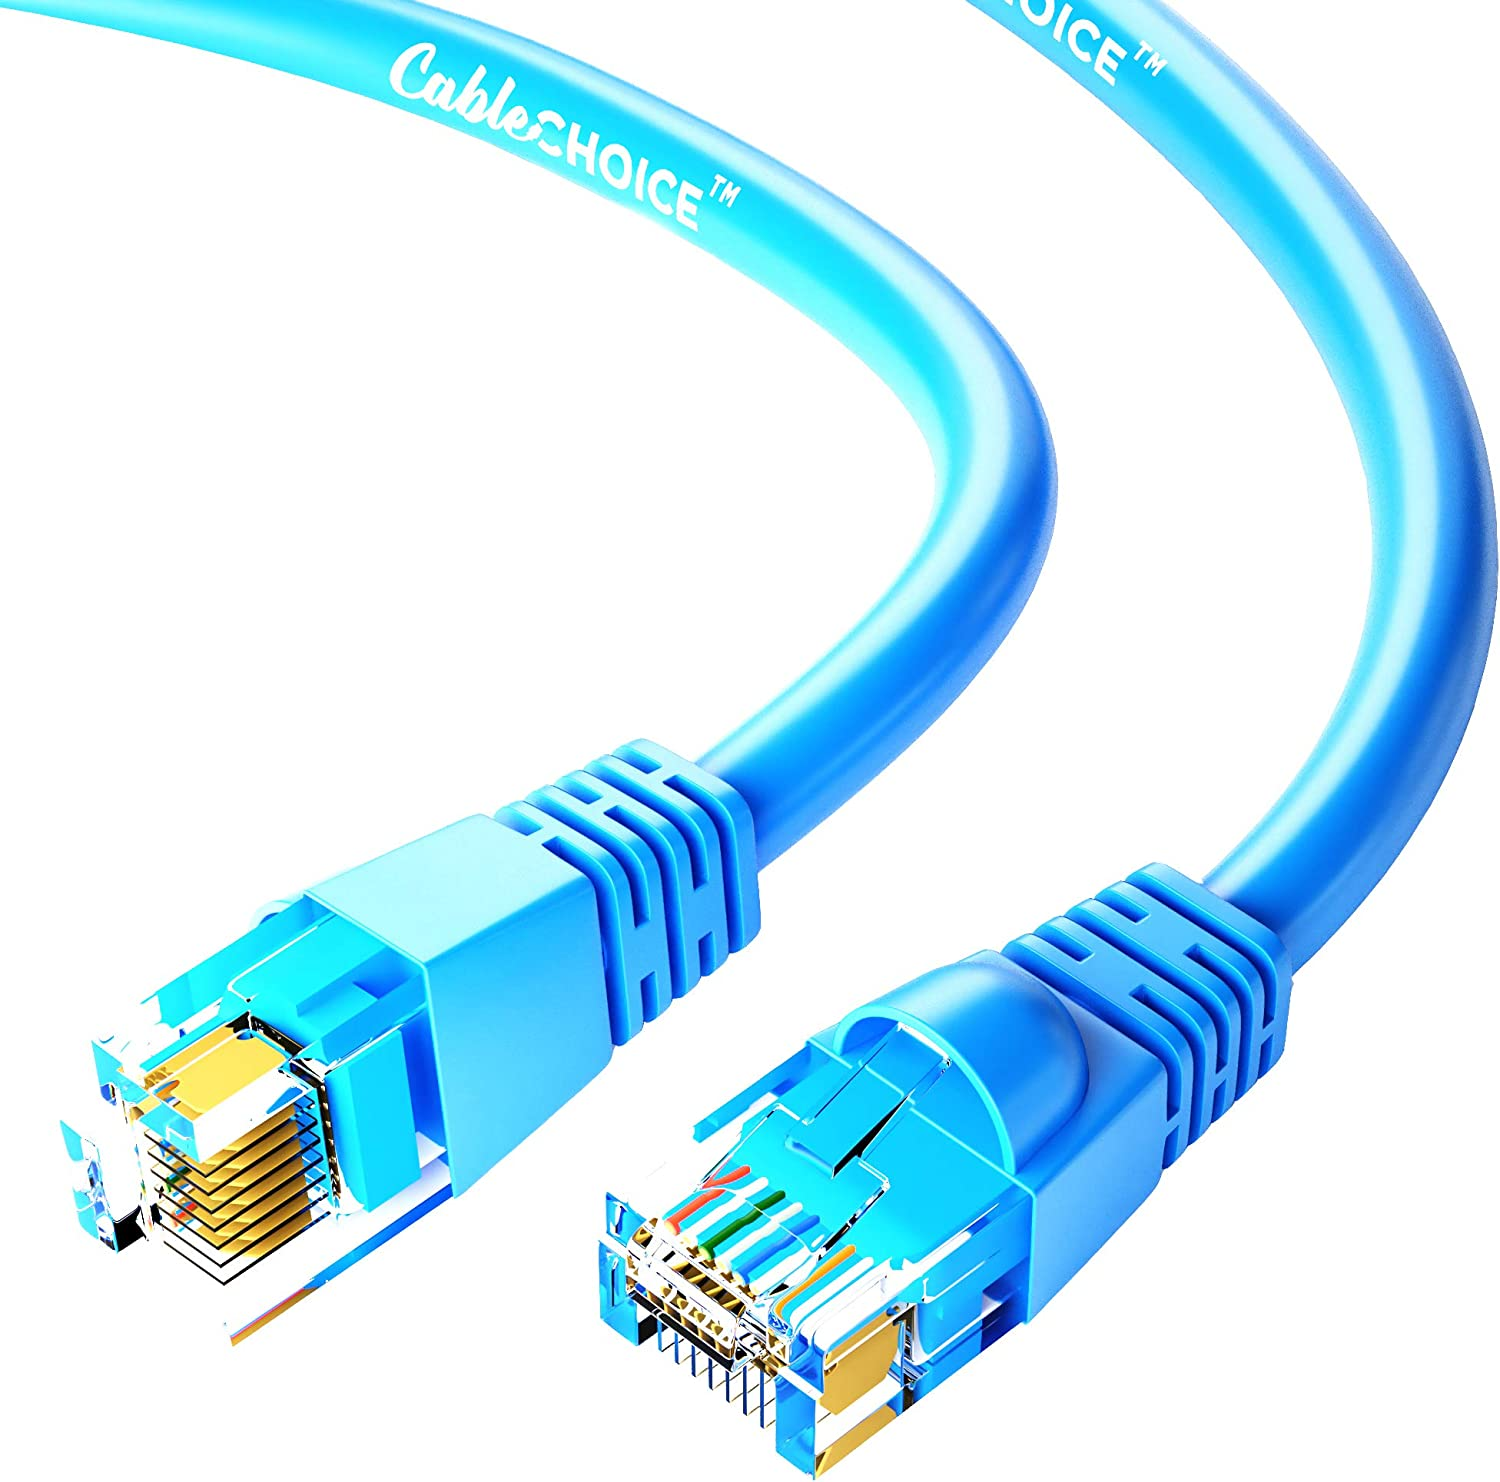 UTP Available in 28 Lengths and 10 Colors Computer Network Cable with Snagless Connector RJ45 10Gbps High Speed LAN Internet Patch Cord 7 Feet - Blue Cat5e Ethernet Cable CABLECHOICE 5-Pack